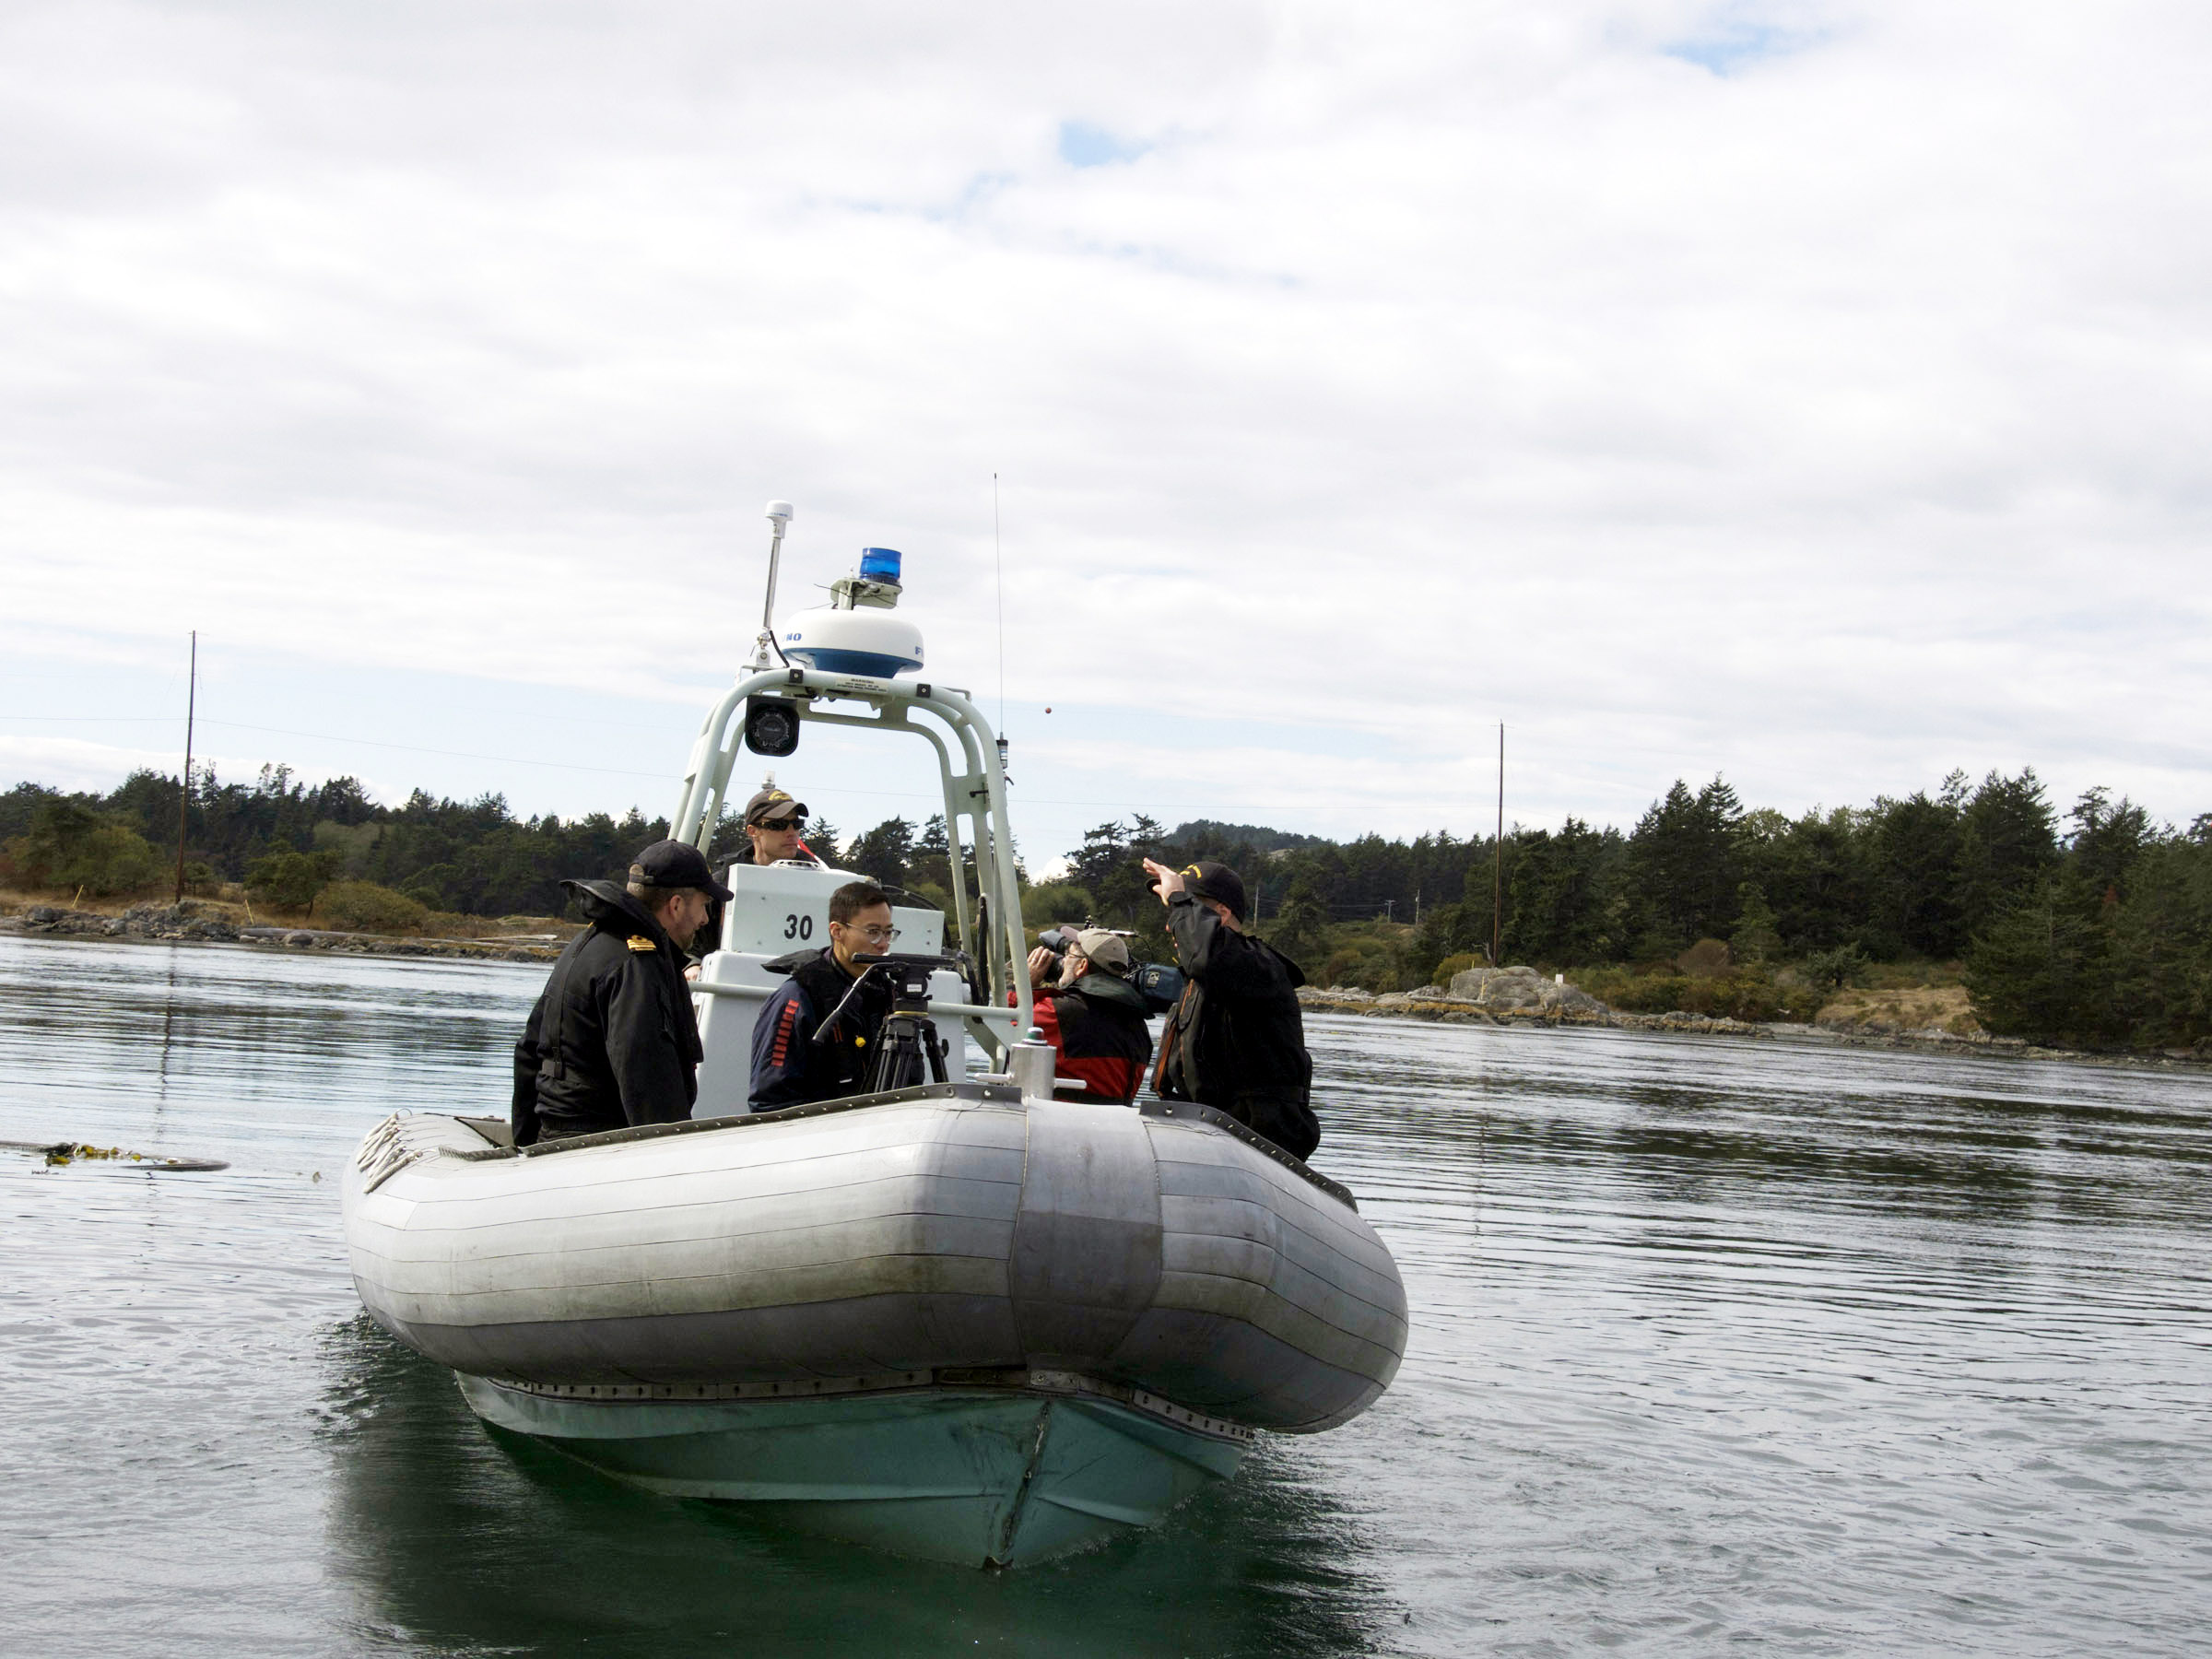 Members of Naval Fleet School (Pacific) set off two charges of C4 explosives via remote control during a demolition demonstration on Bentinck Island.